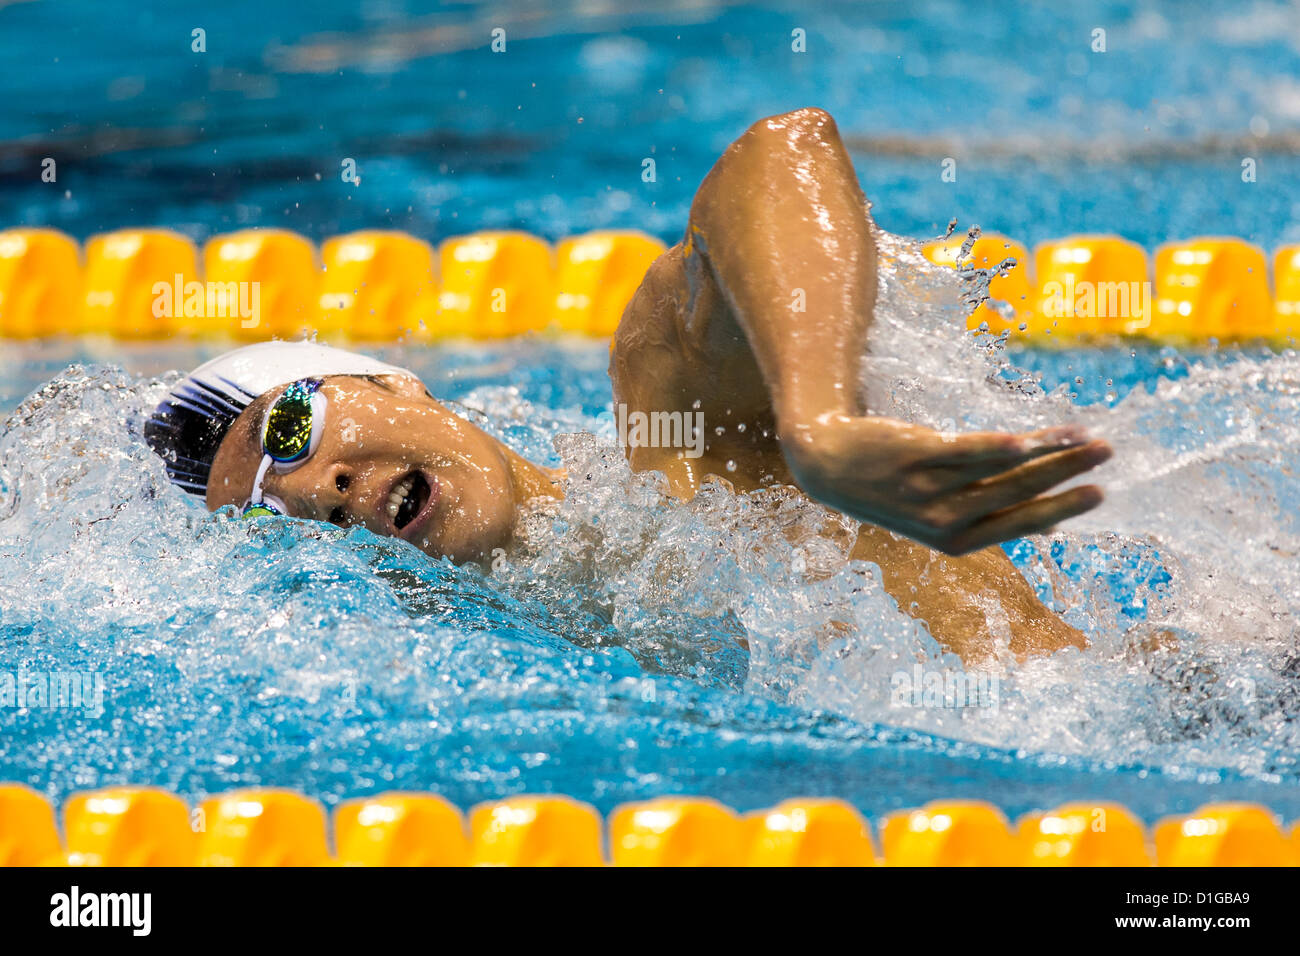 Taehwan Park (KOR) competing Men's 400m Freestyle Heat at the 2012 Olympic Summer Games, London, England. Stock Photo